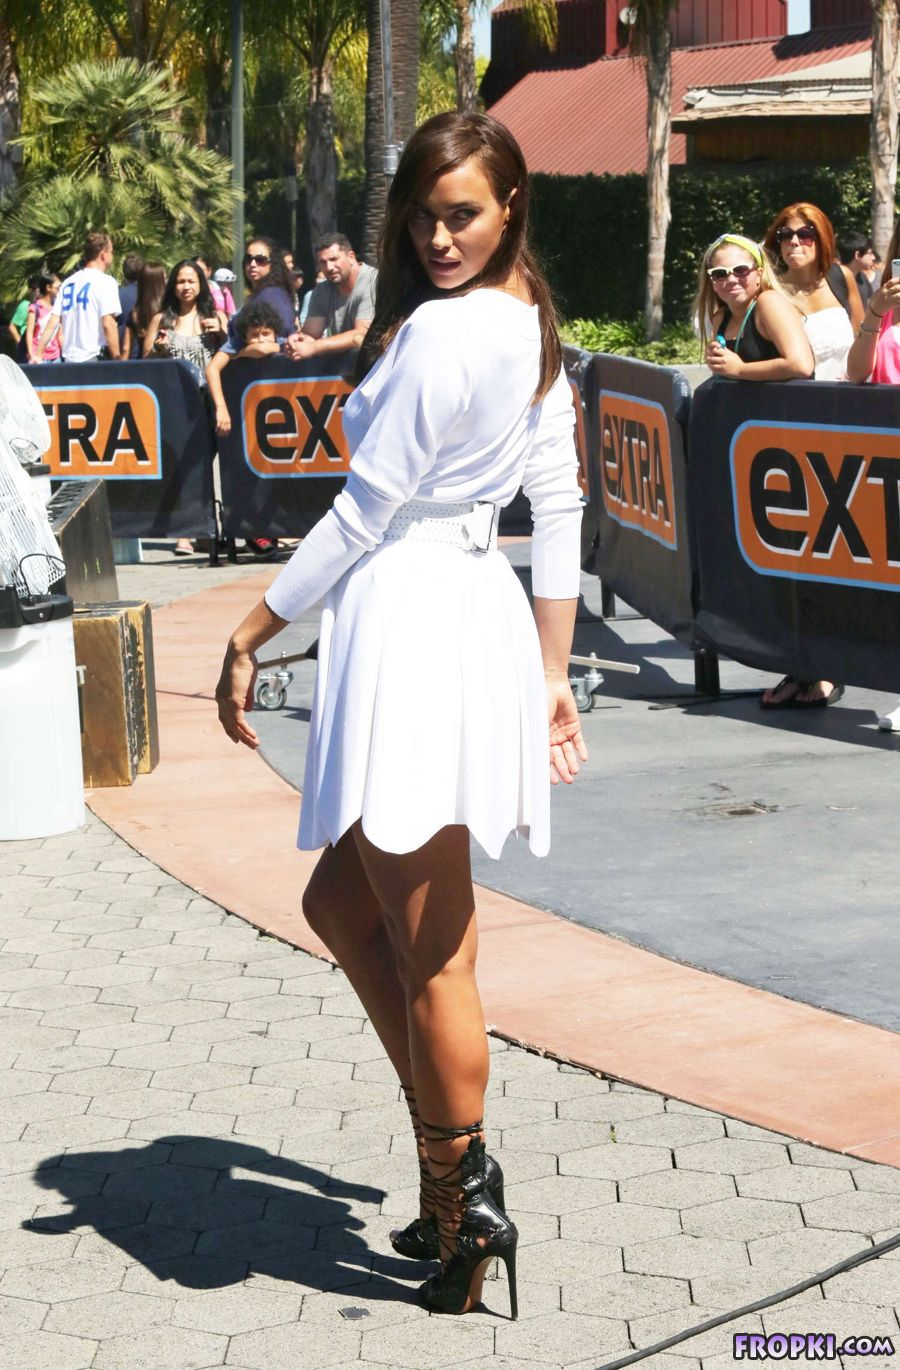 Irina Shayk displays Toned legs at 'Extra' Set